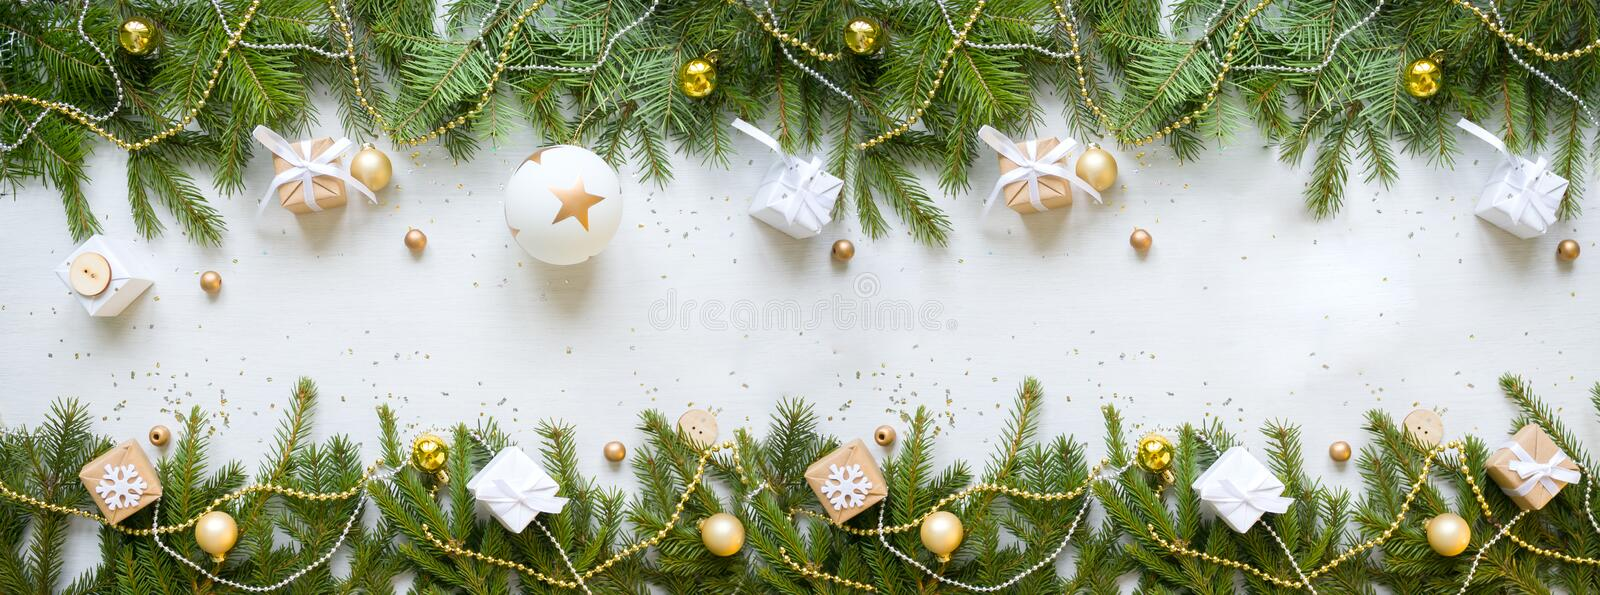 Happy new year and Merry Christmas. Background. Merry Christmas and Happy New Year. Christmas Decorative Ornate Fir Glitter Natural Gifts on white Background stock photography